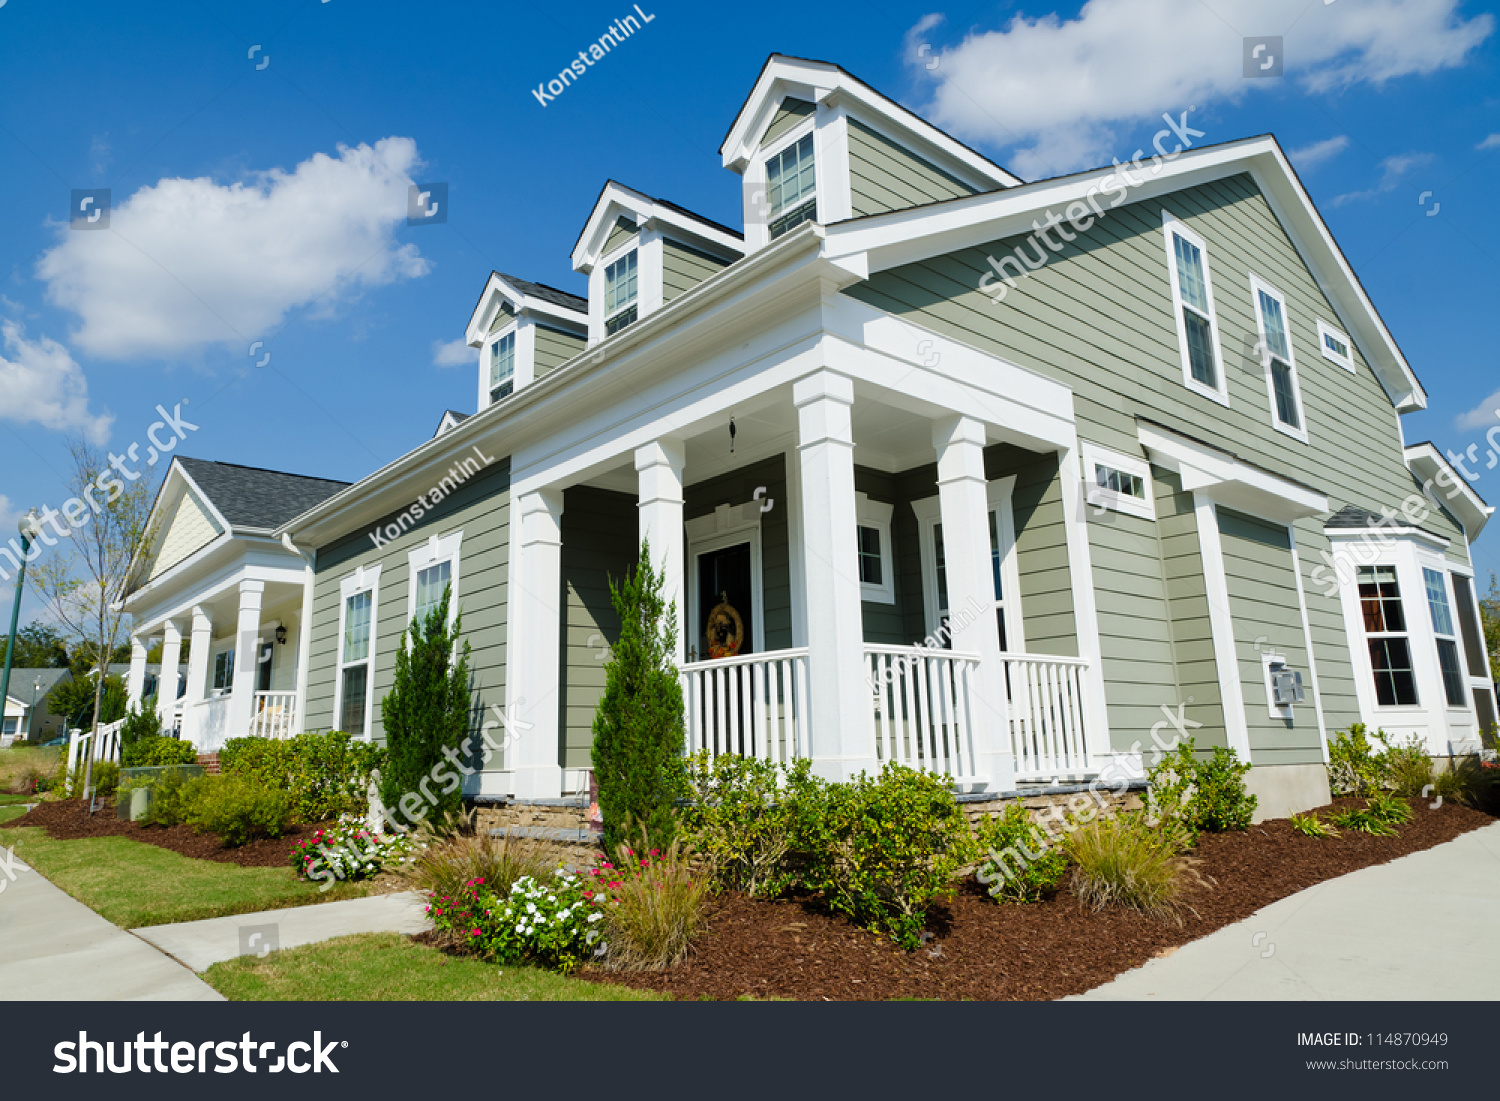 residential cottage style homes stock photo 114870949